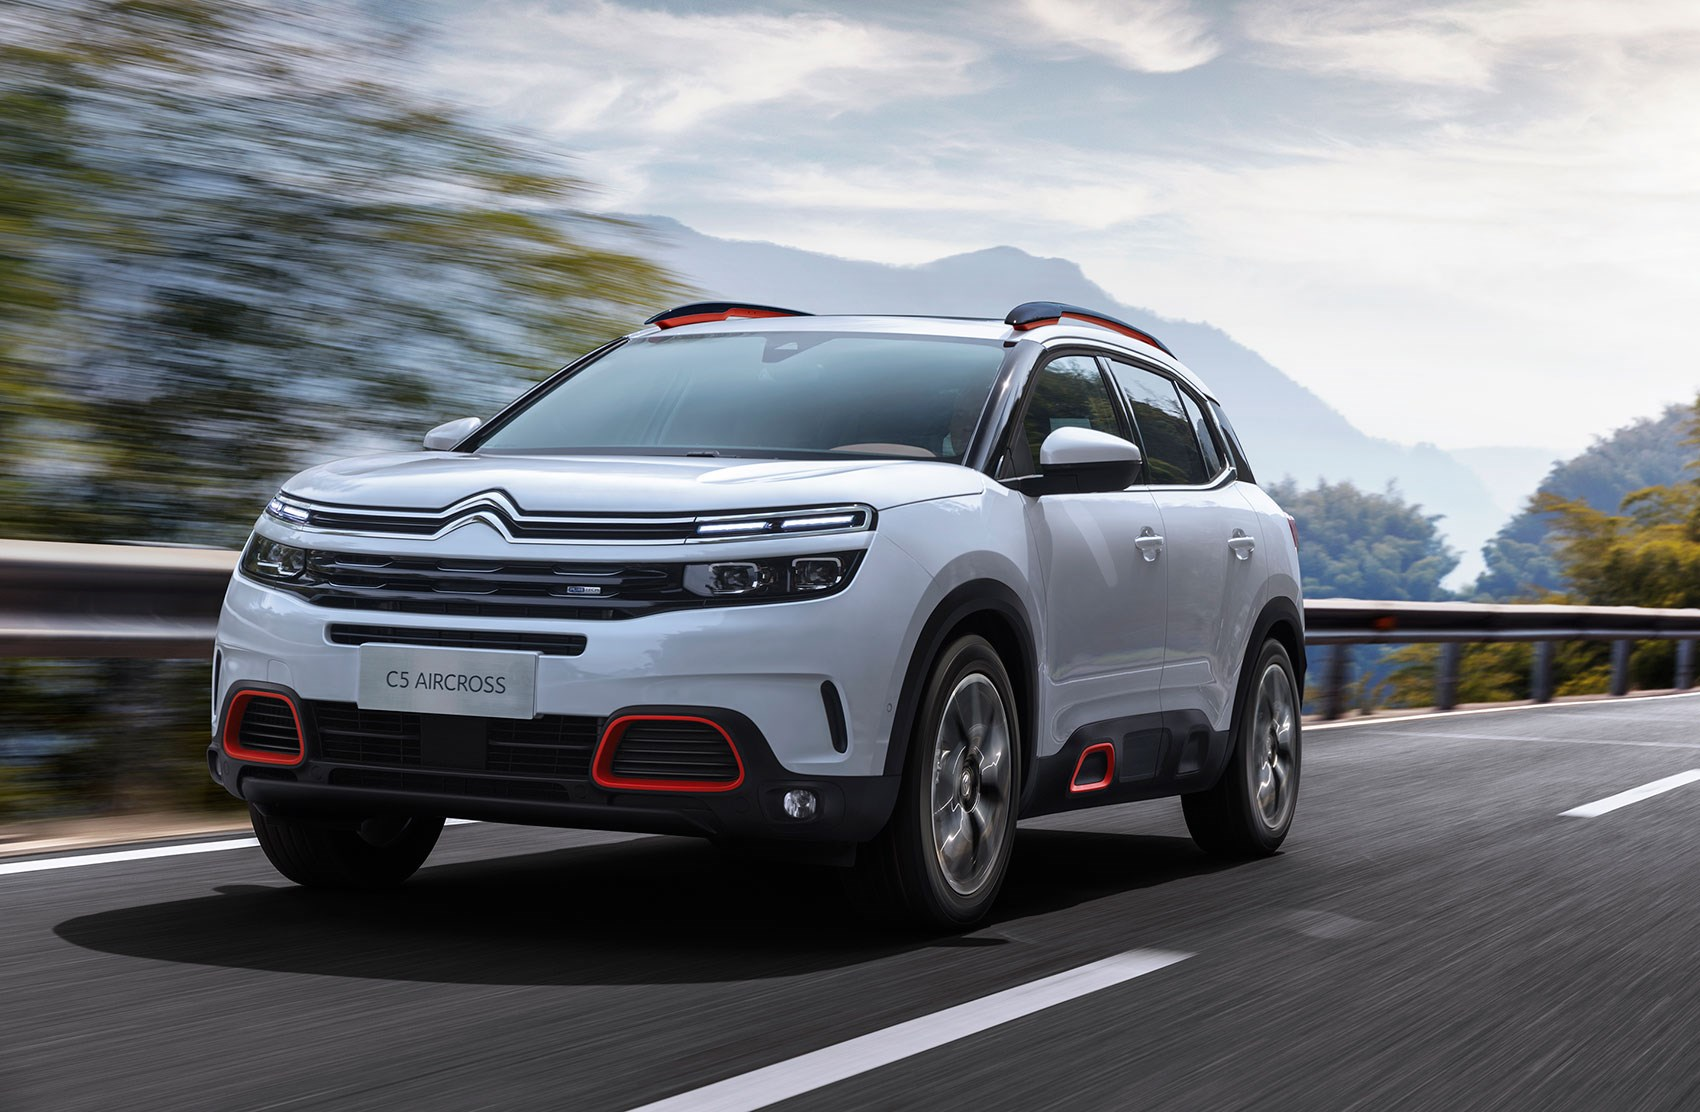 citroen c5 aircross suv  2019   bringing new comfort to the masses